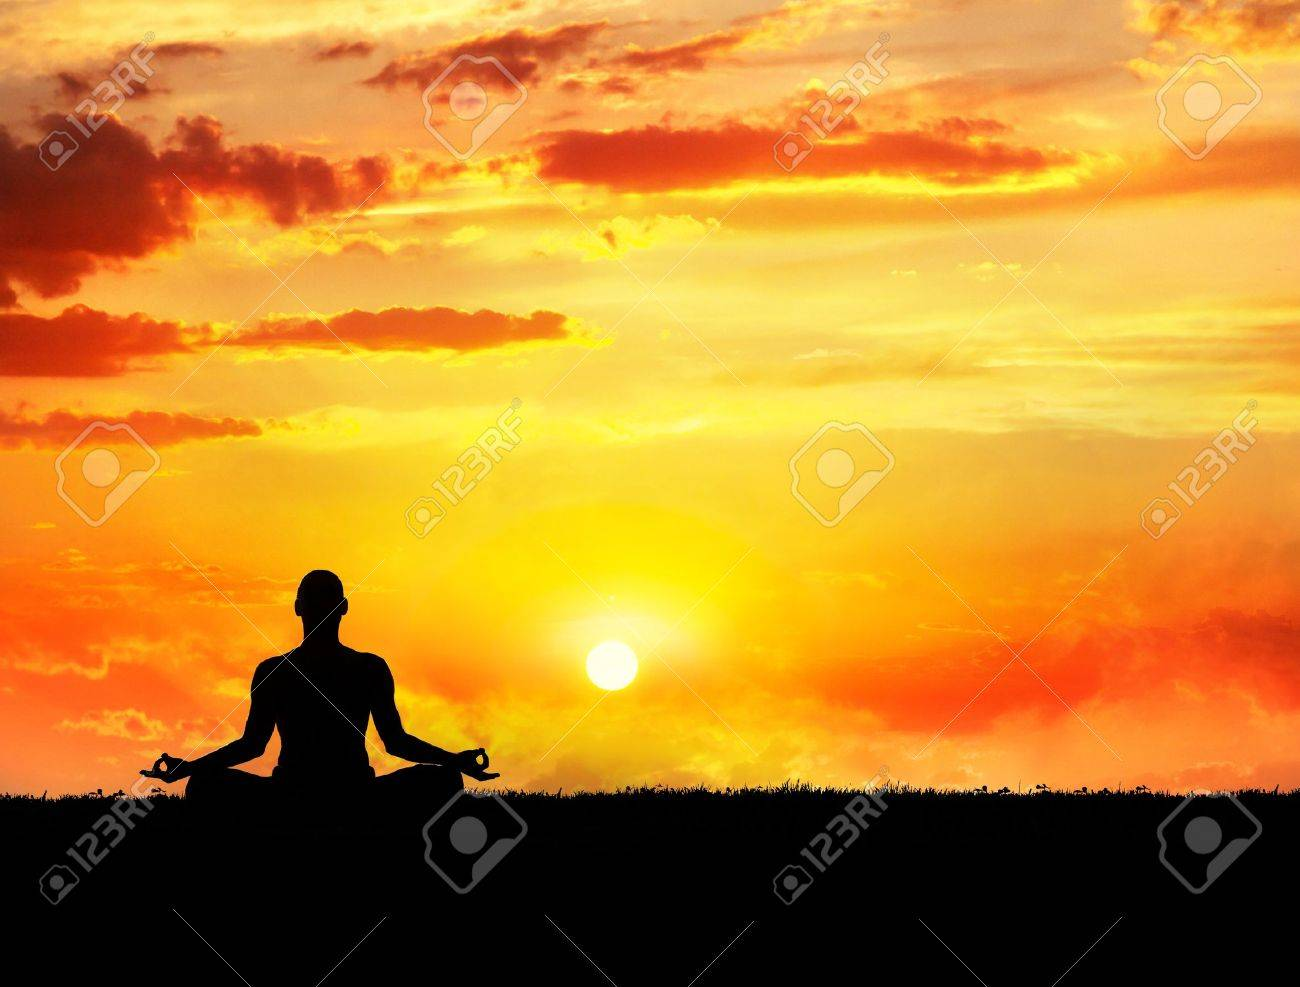 Yoga meditation in lotus pose by man silhouette at sunset sky background. Free space for text and can be used as template for web-site Stock Photo - 11858851